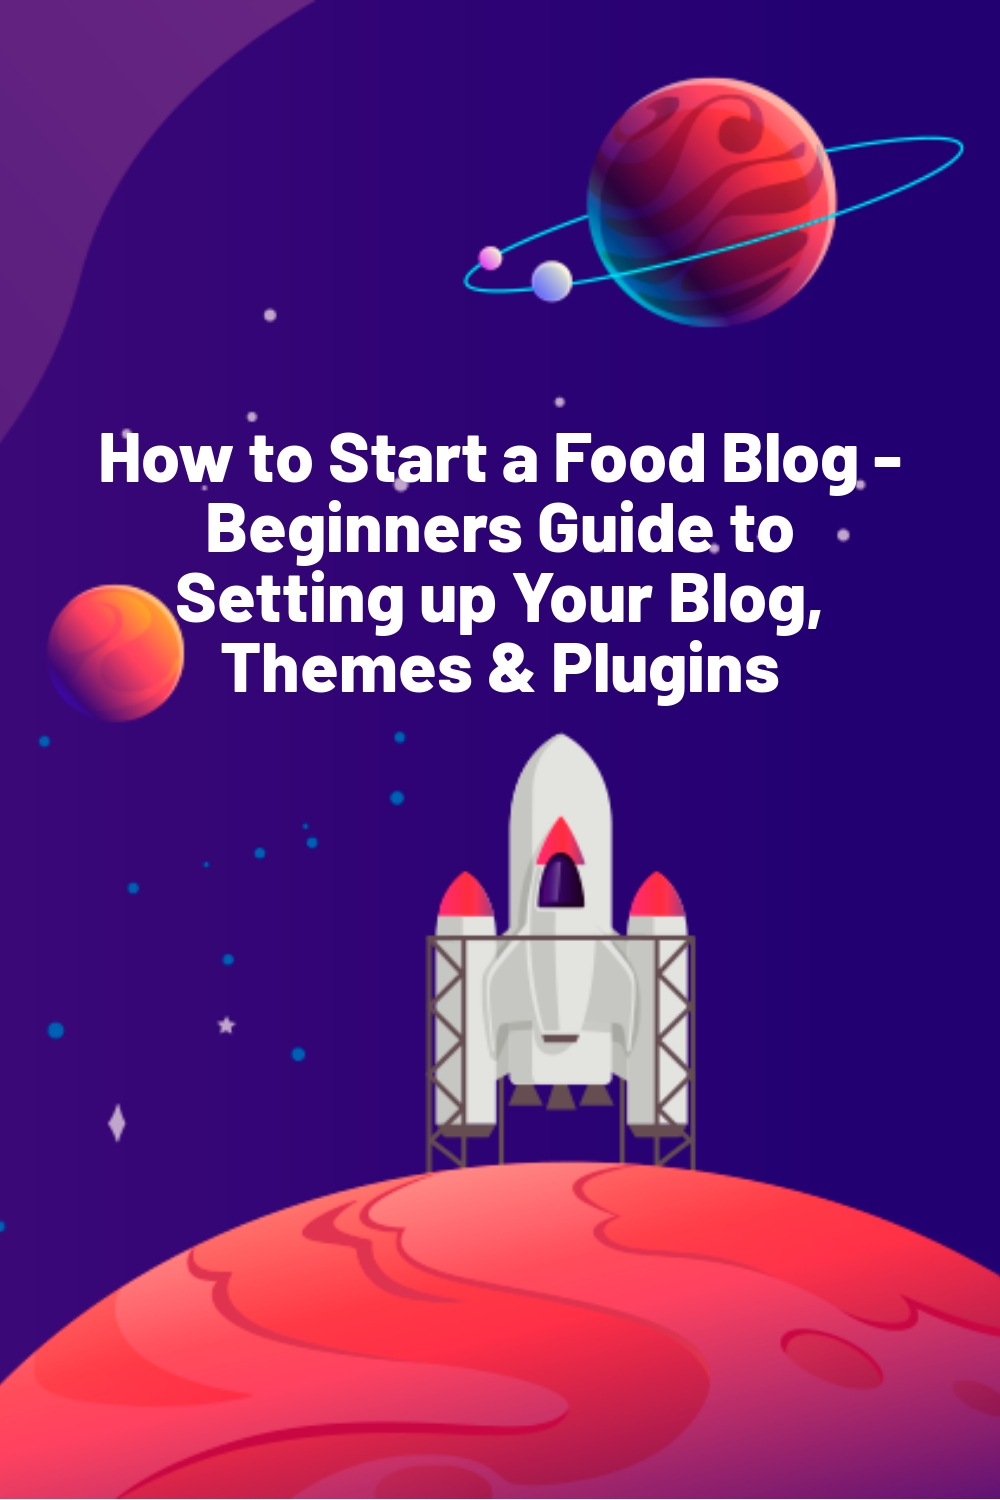 How to Start a Food Blog – Beginners Guide to Setting up Your Blog, Themes & Plugins